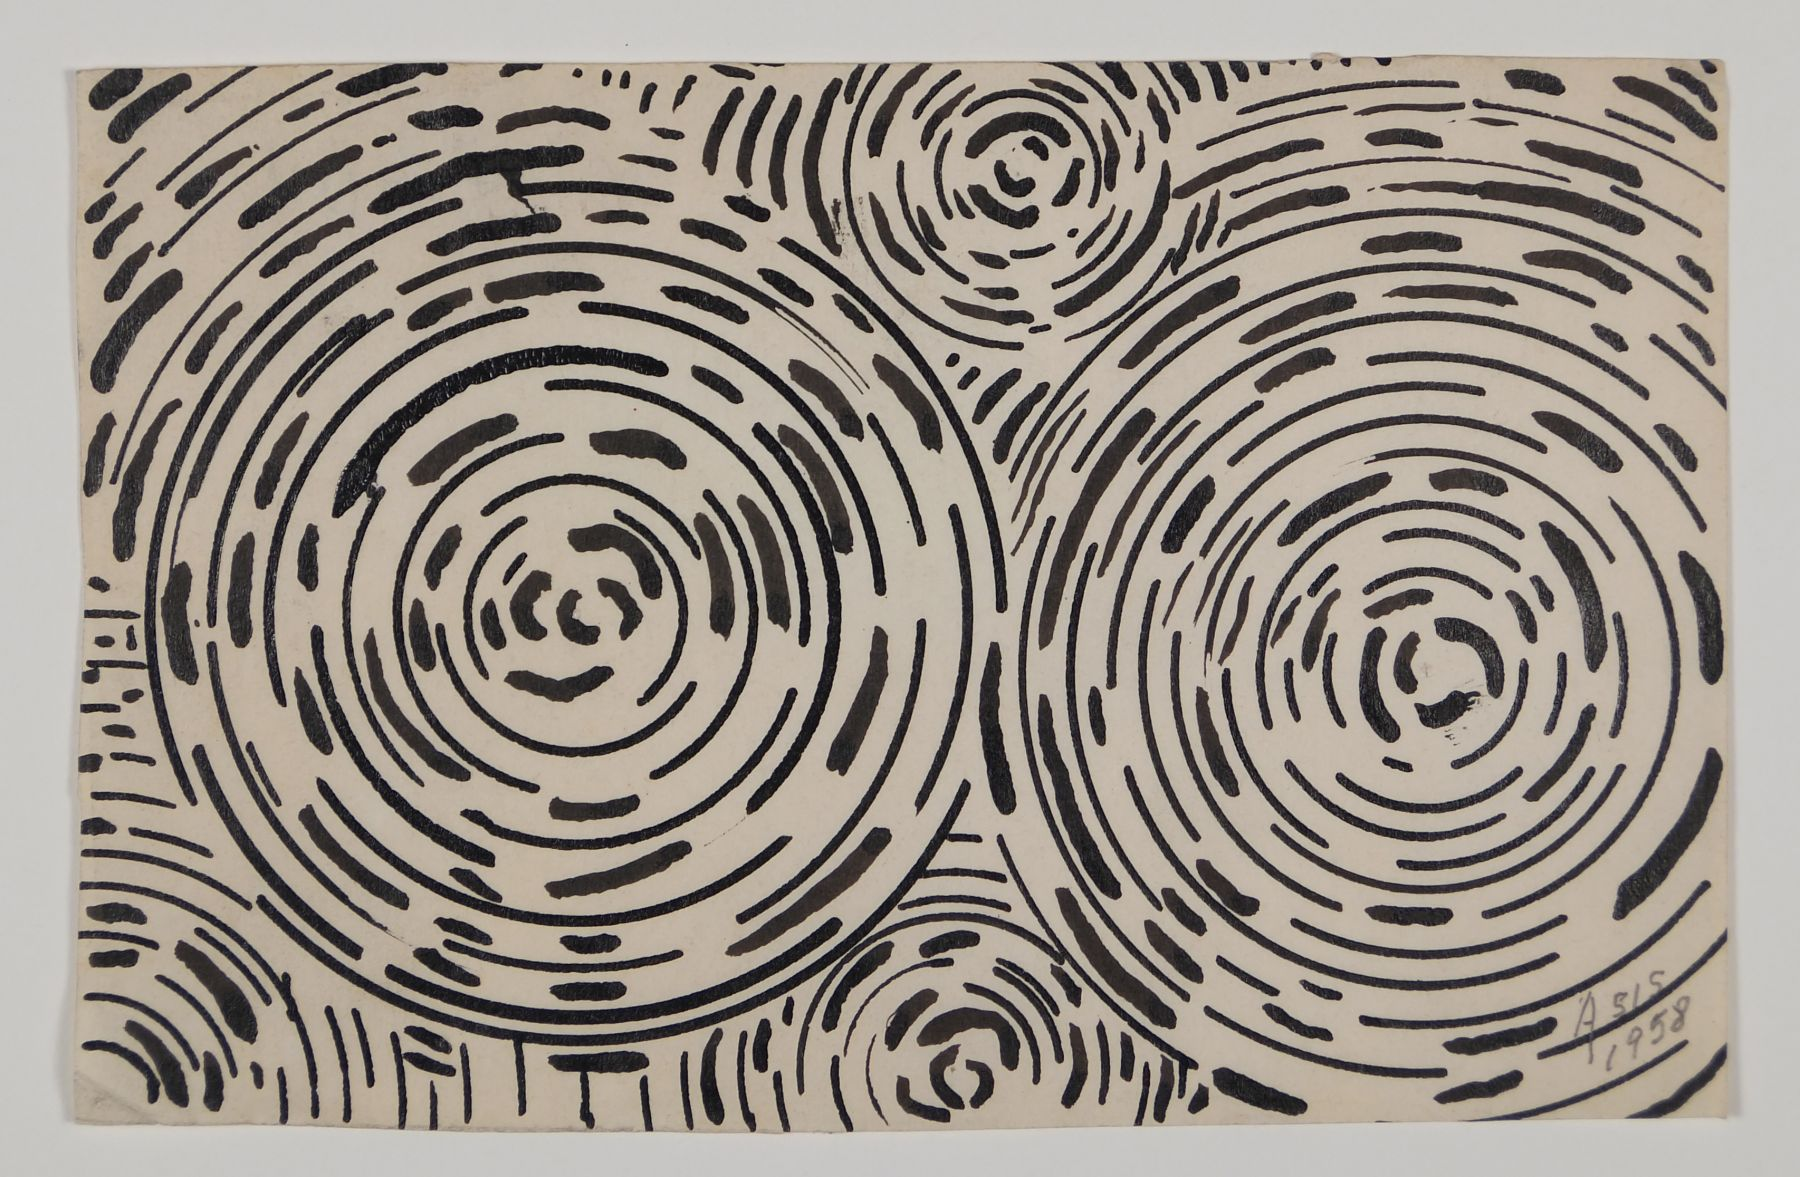 Antonio Asis, Untitled, 1958, Ink on paper,3 1/2 x 5 1/2 in. (8.9 x 14 cm.)